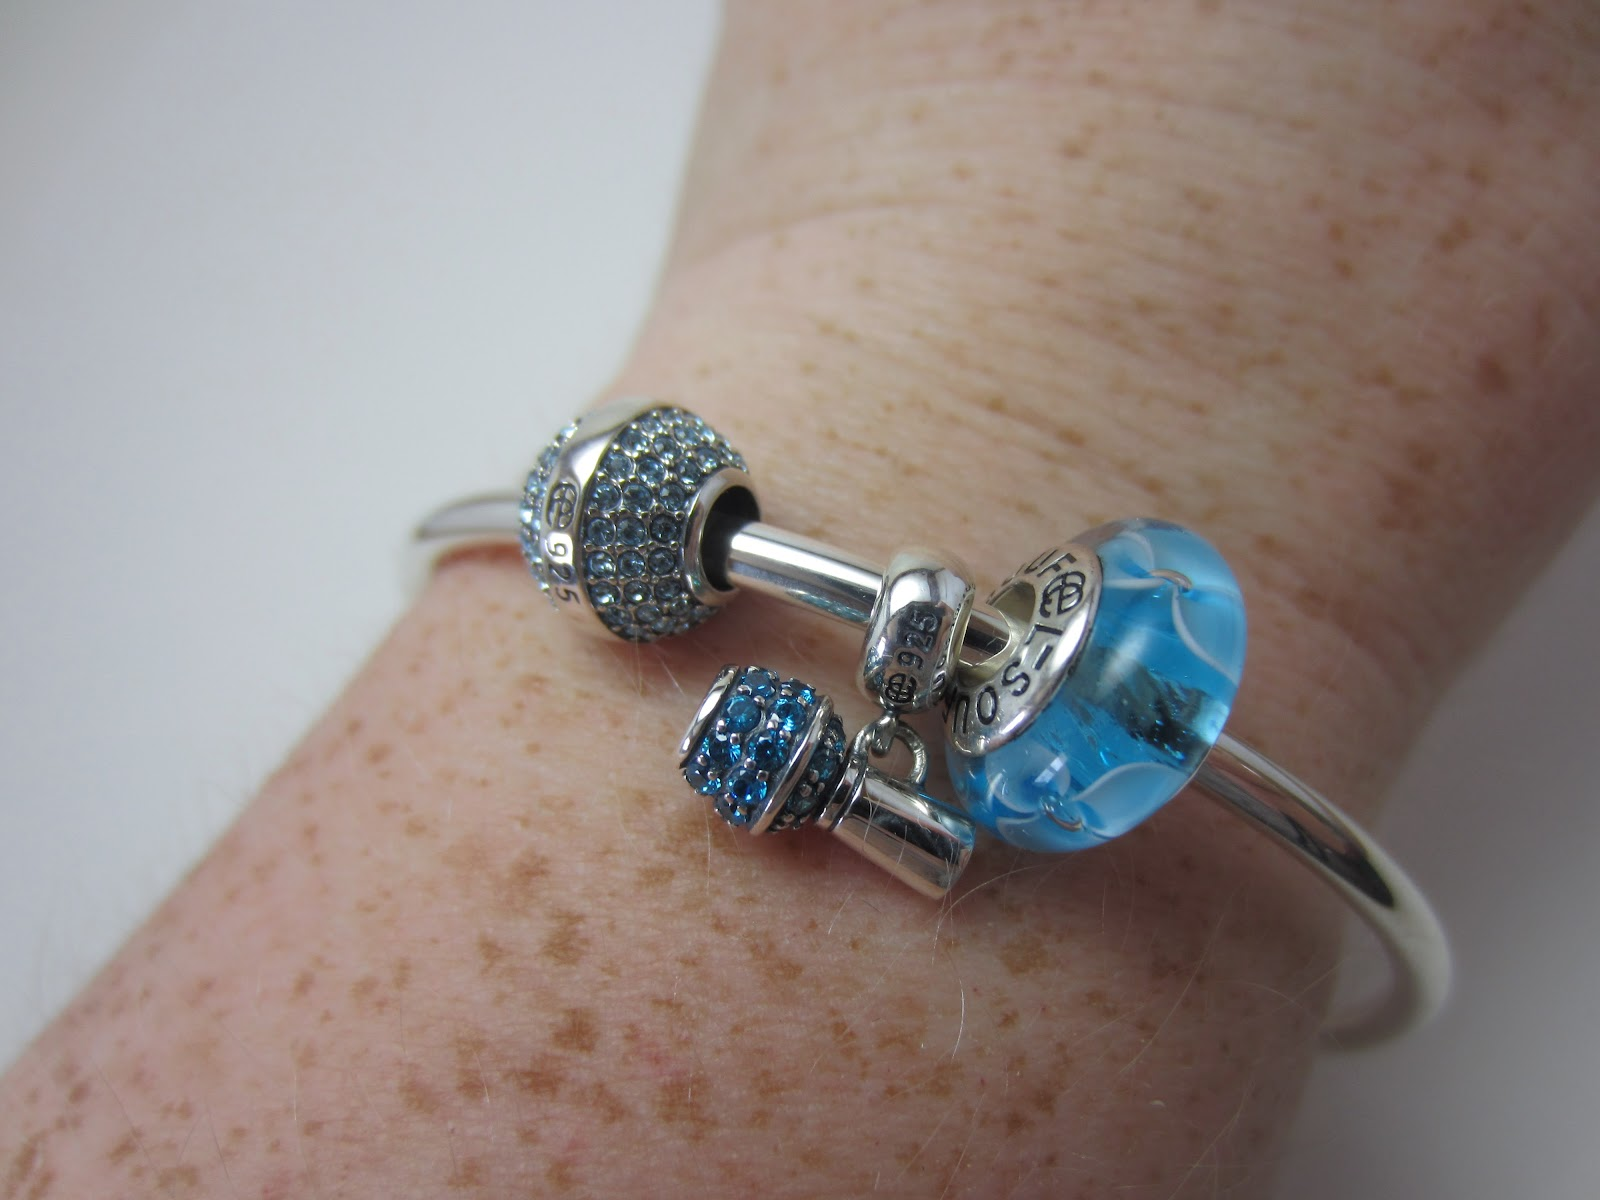 Polished with Pizzazz: Soufeel Charm Bracelet and Matching Mani